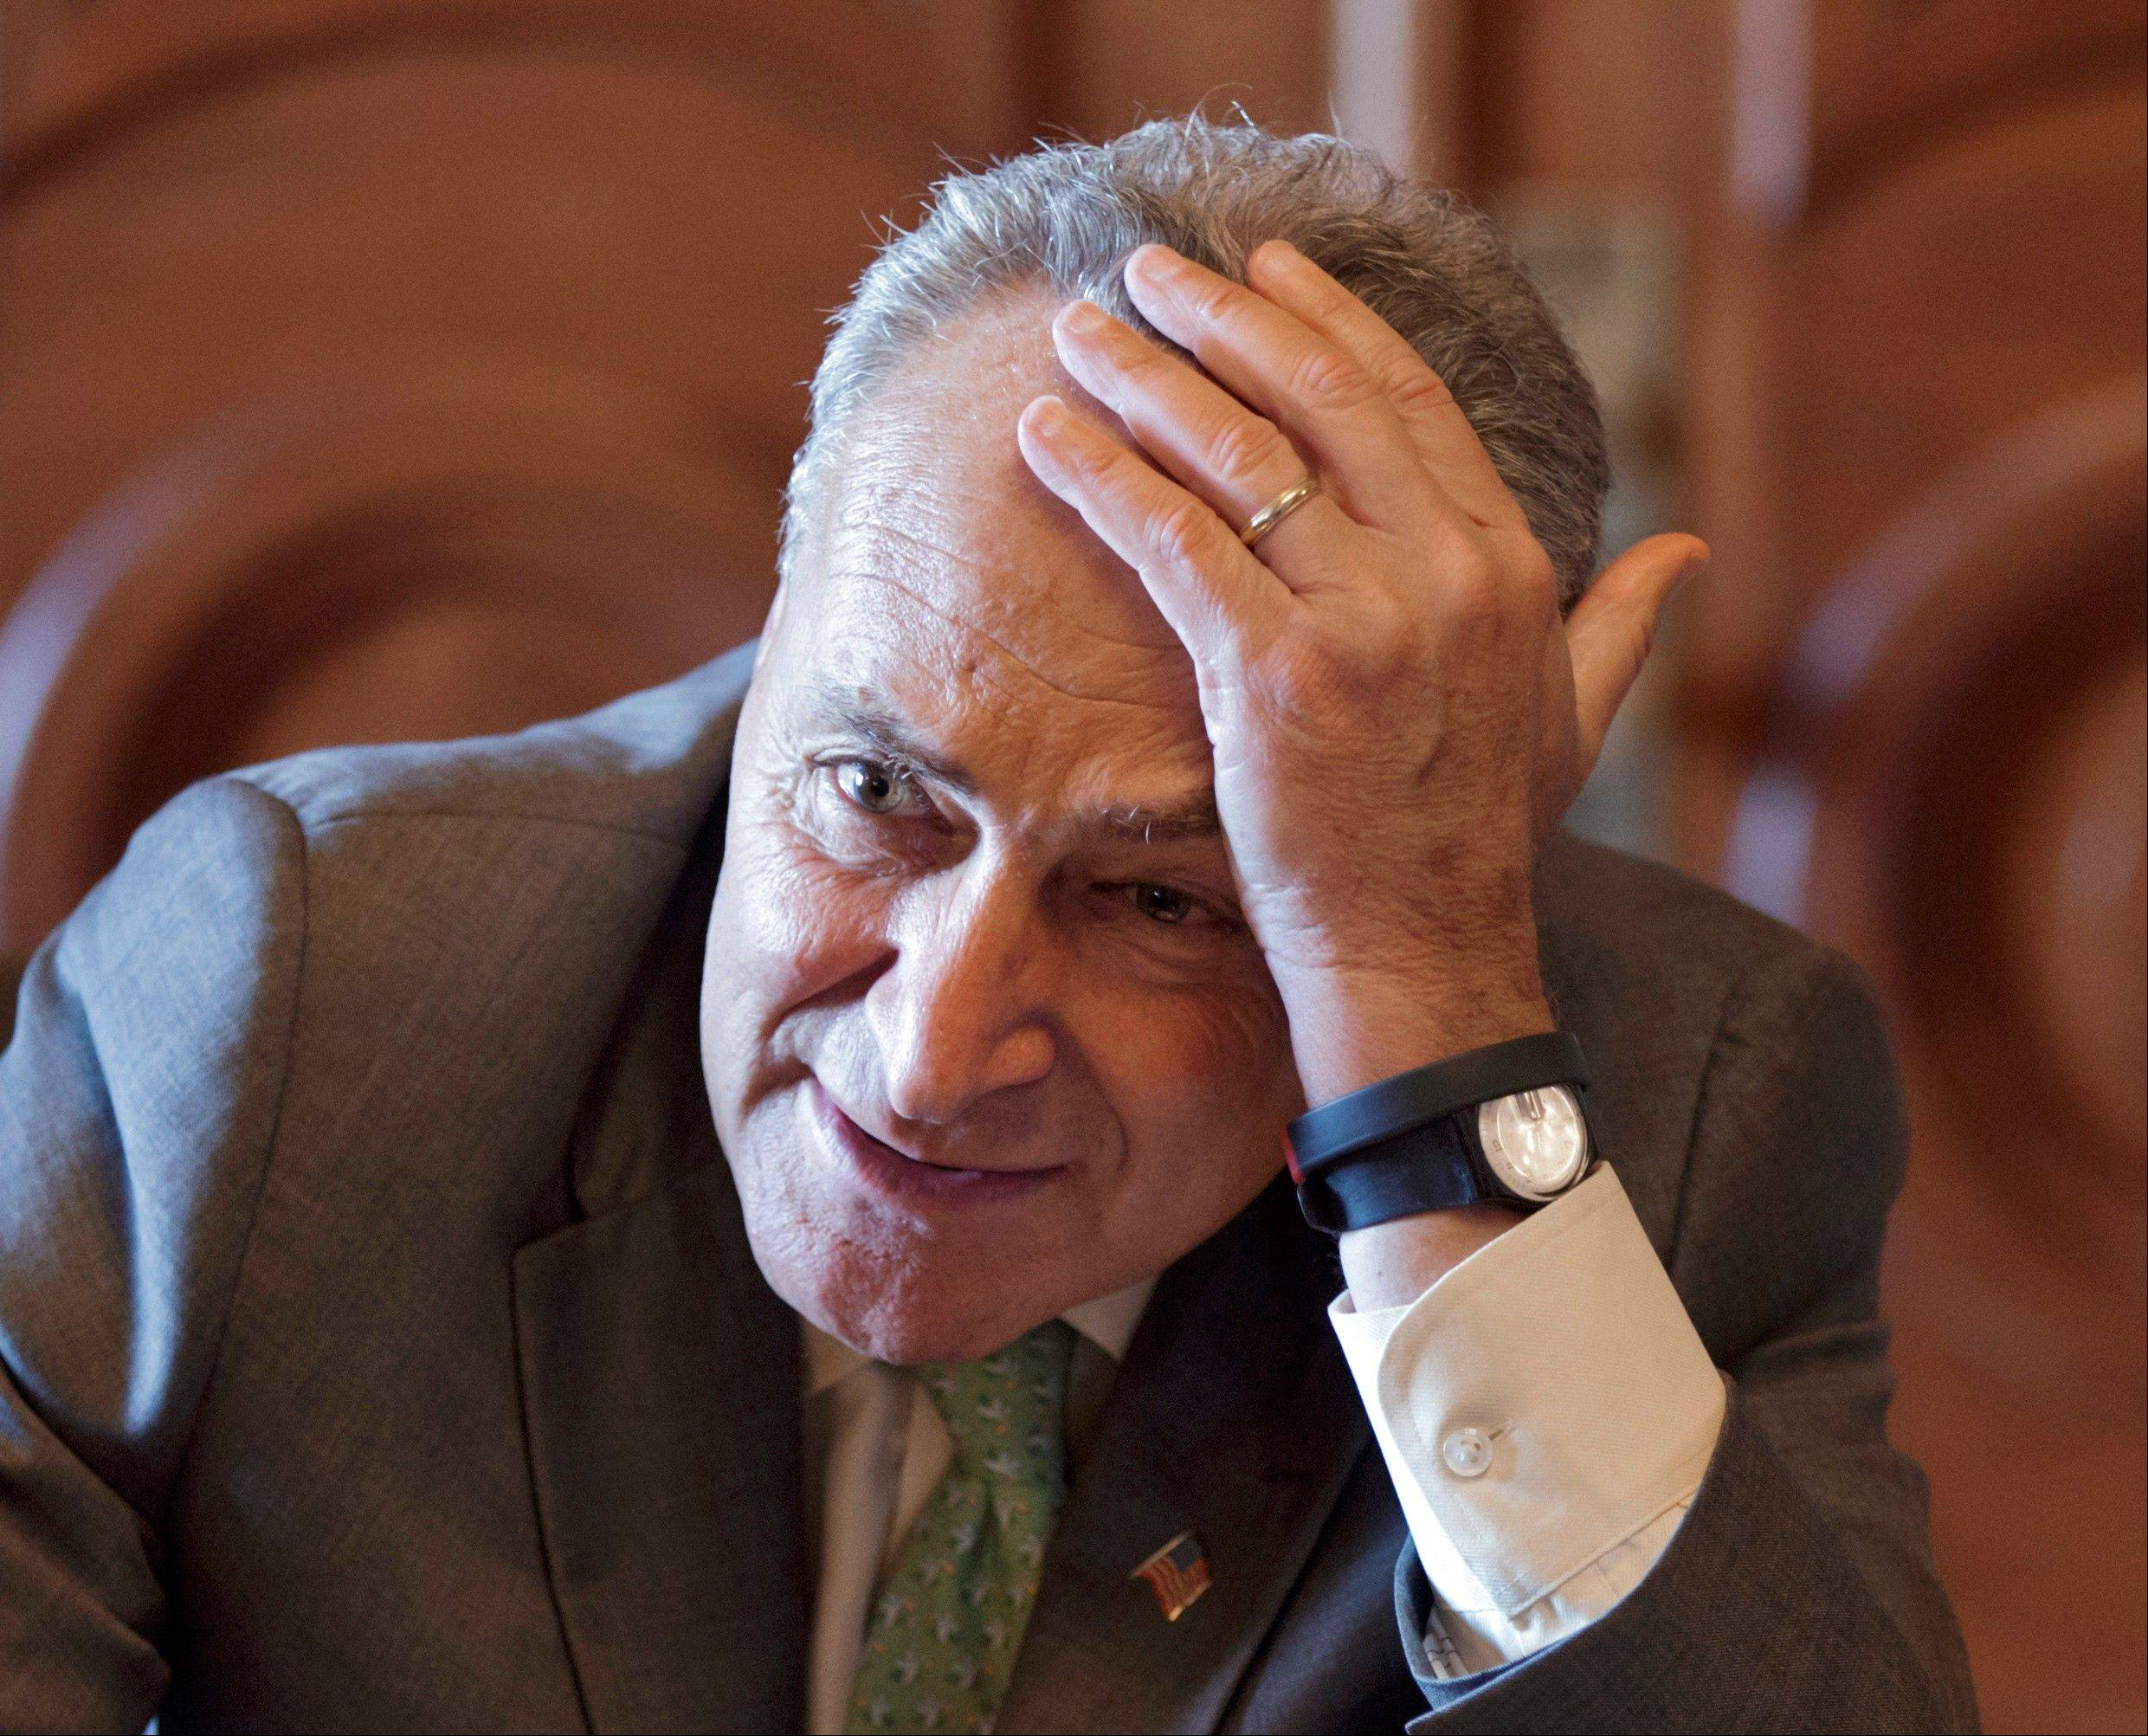 Sen. Chuck Schumer, D-N.Y., has a meeting just off the Senate Chamber just before the final vote on whether to reverse the recent hike in rates for government guaranteed student loans, at the Capitol in Washington, Wednesday.